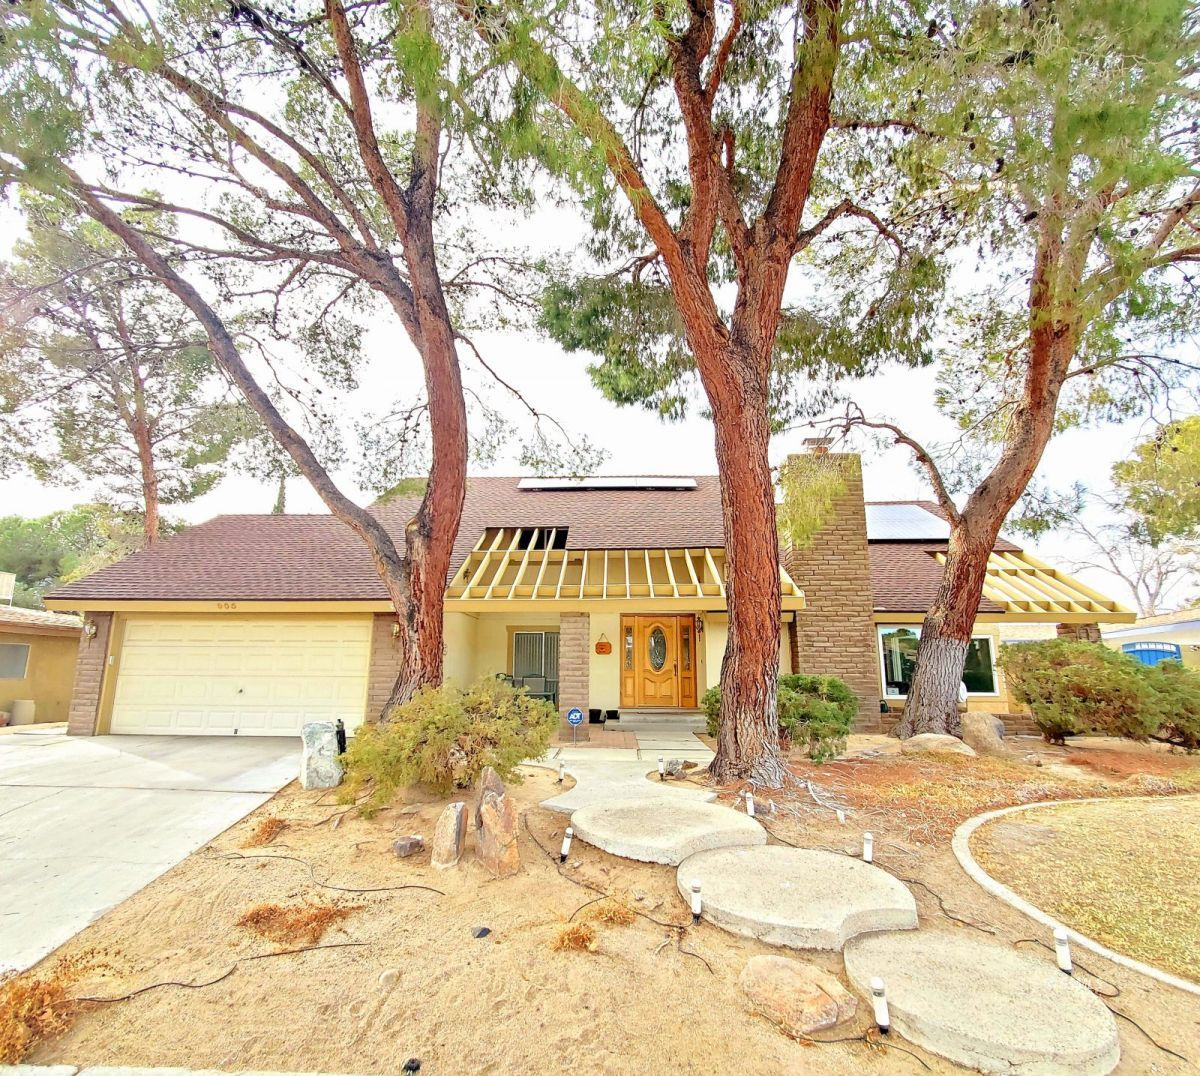 Photo for 905 Sylvia, Ridgecrest, CA 93555 (MLS # 2600013)